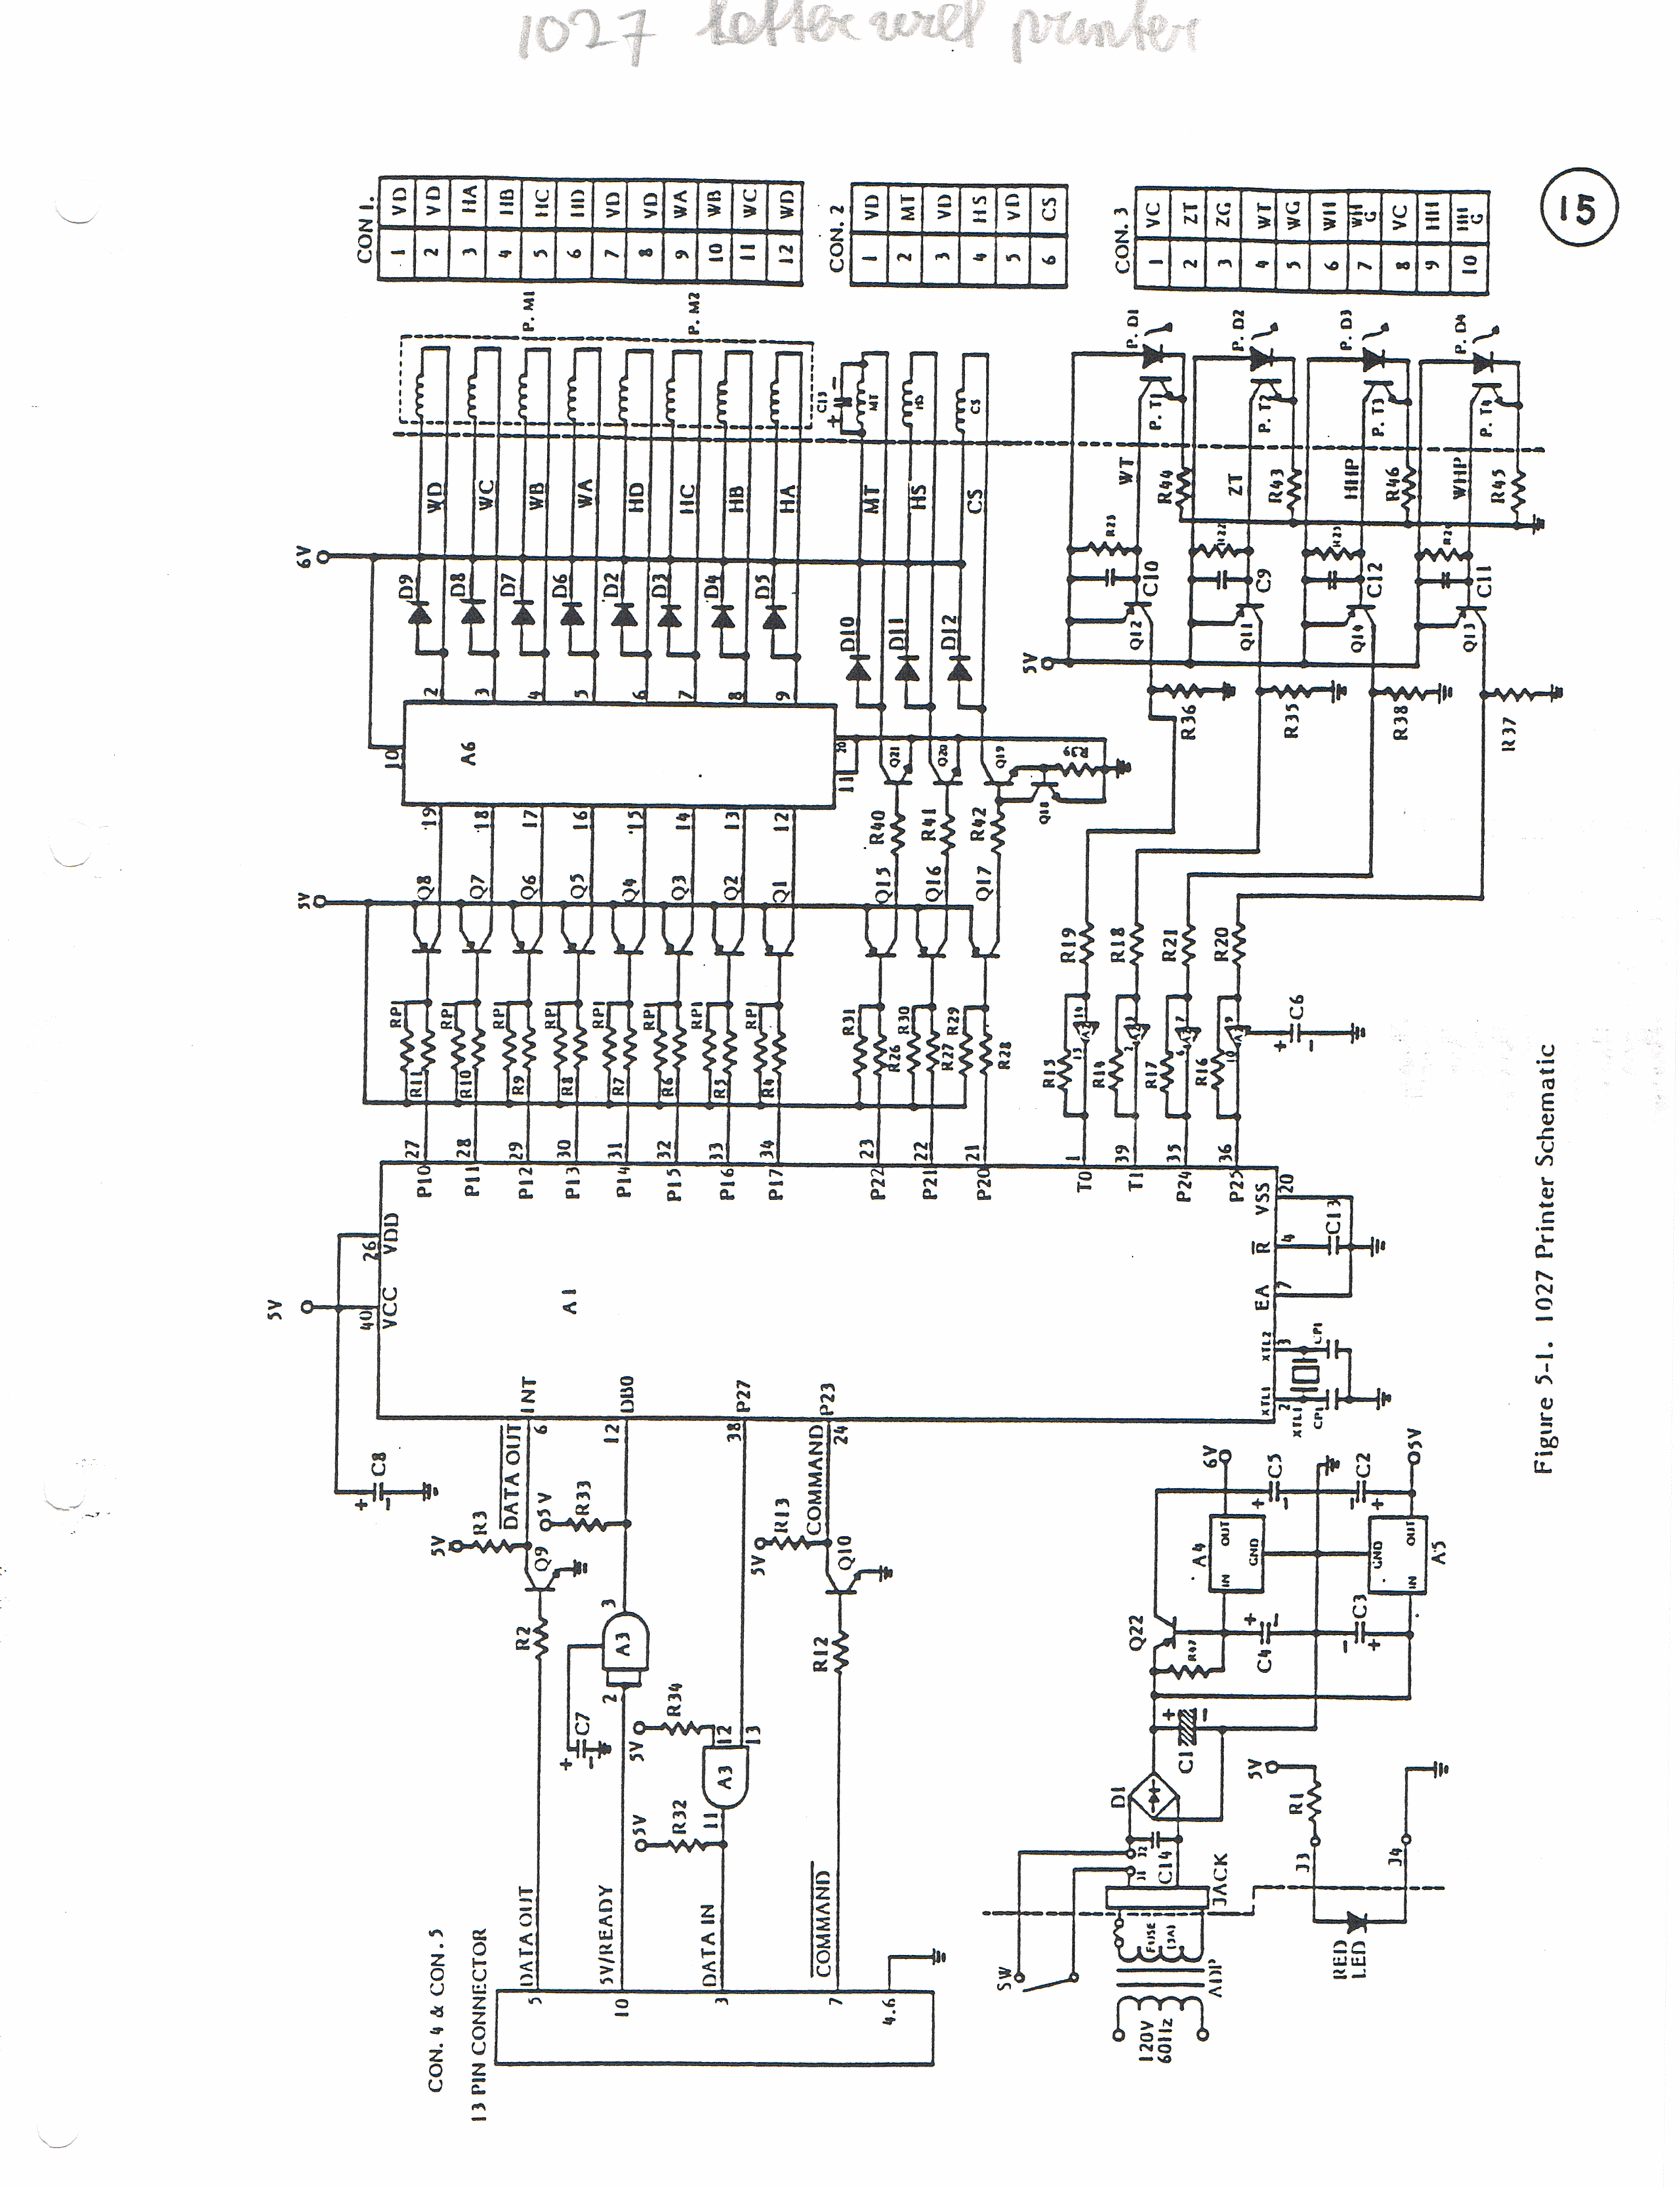 electronic wiring scalar s l nissan bx forklift wiring diagram